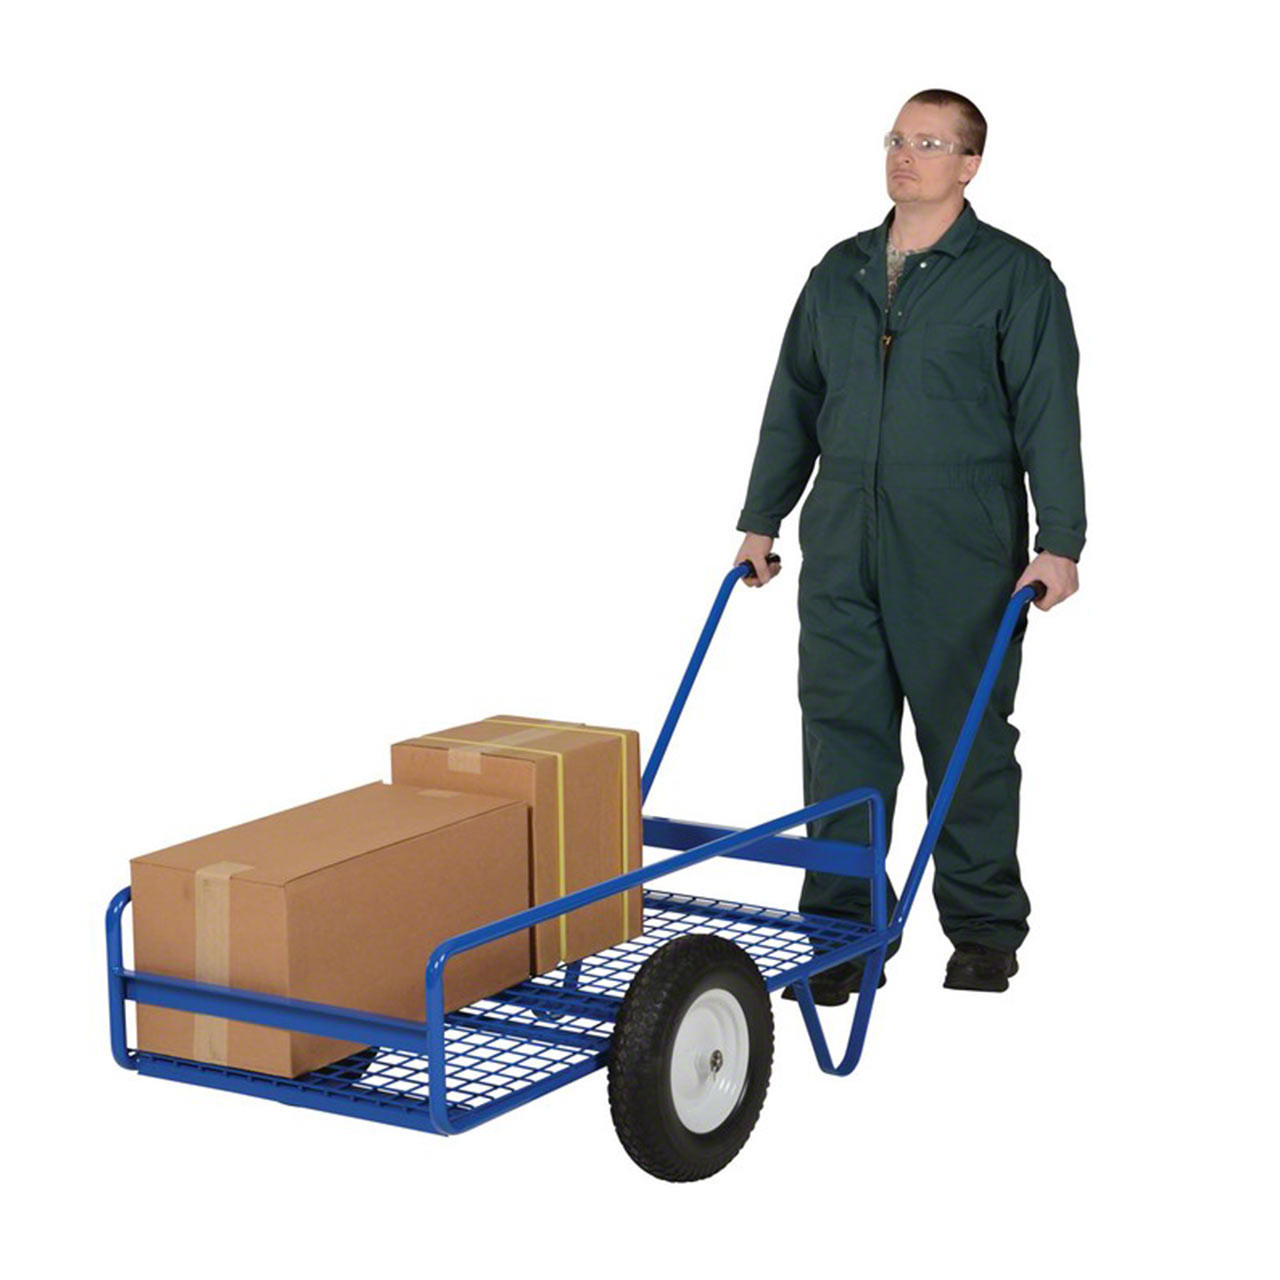 Haul loads over rough or uneven terrain with these tilting work trucks